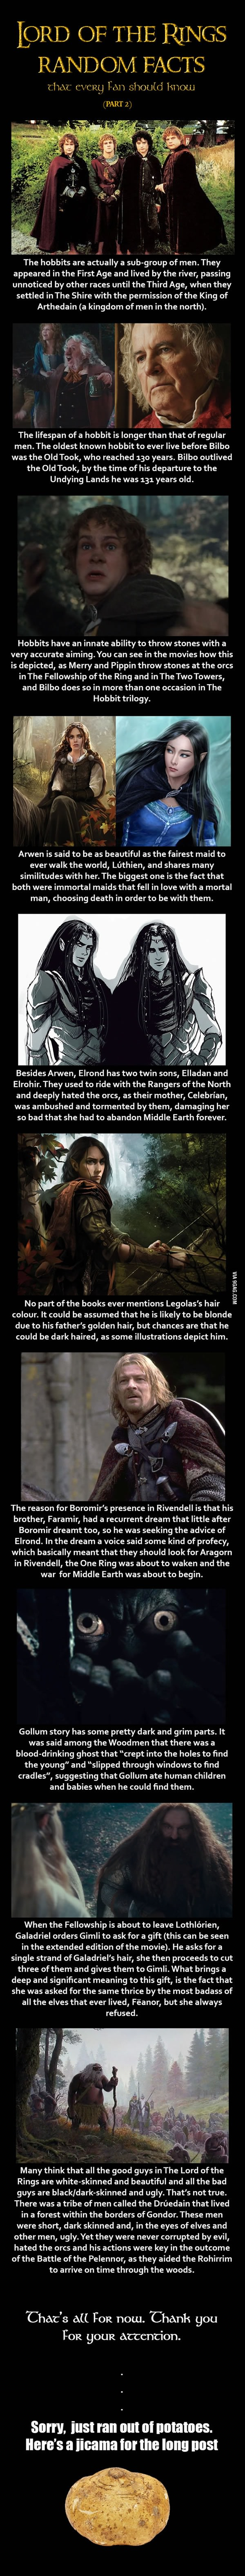 Long List of LORD OF THE RINGS Facts that Every Fan Should